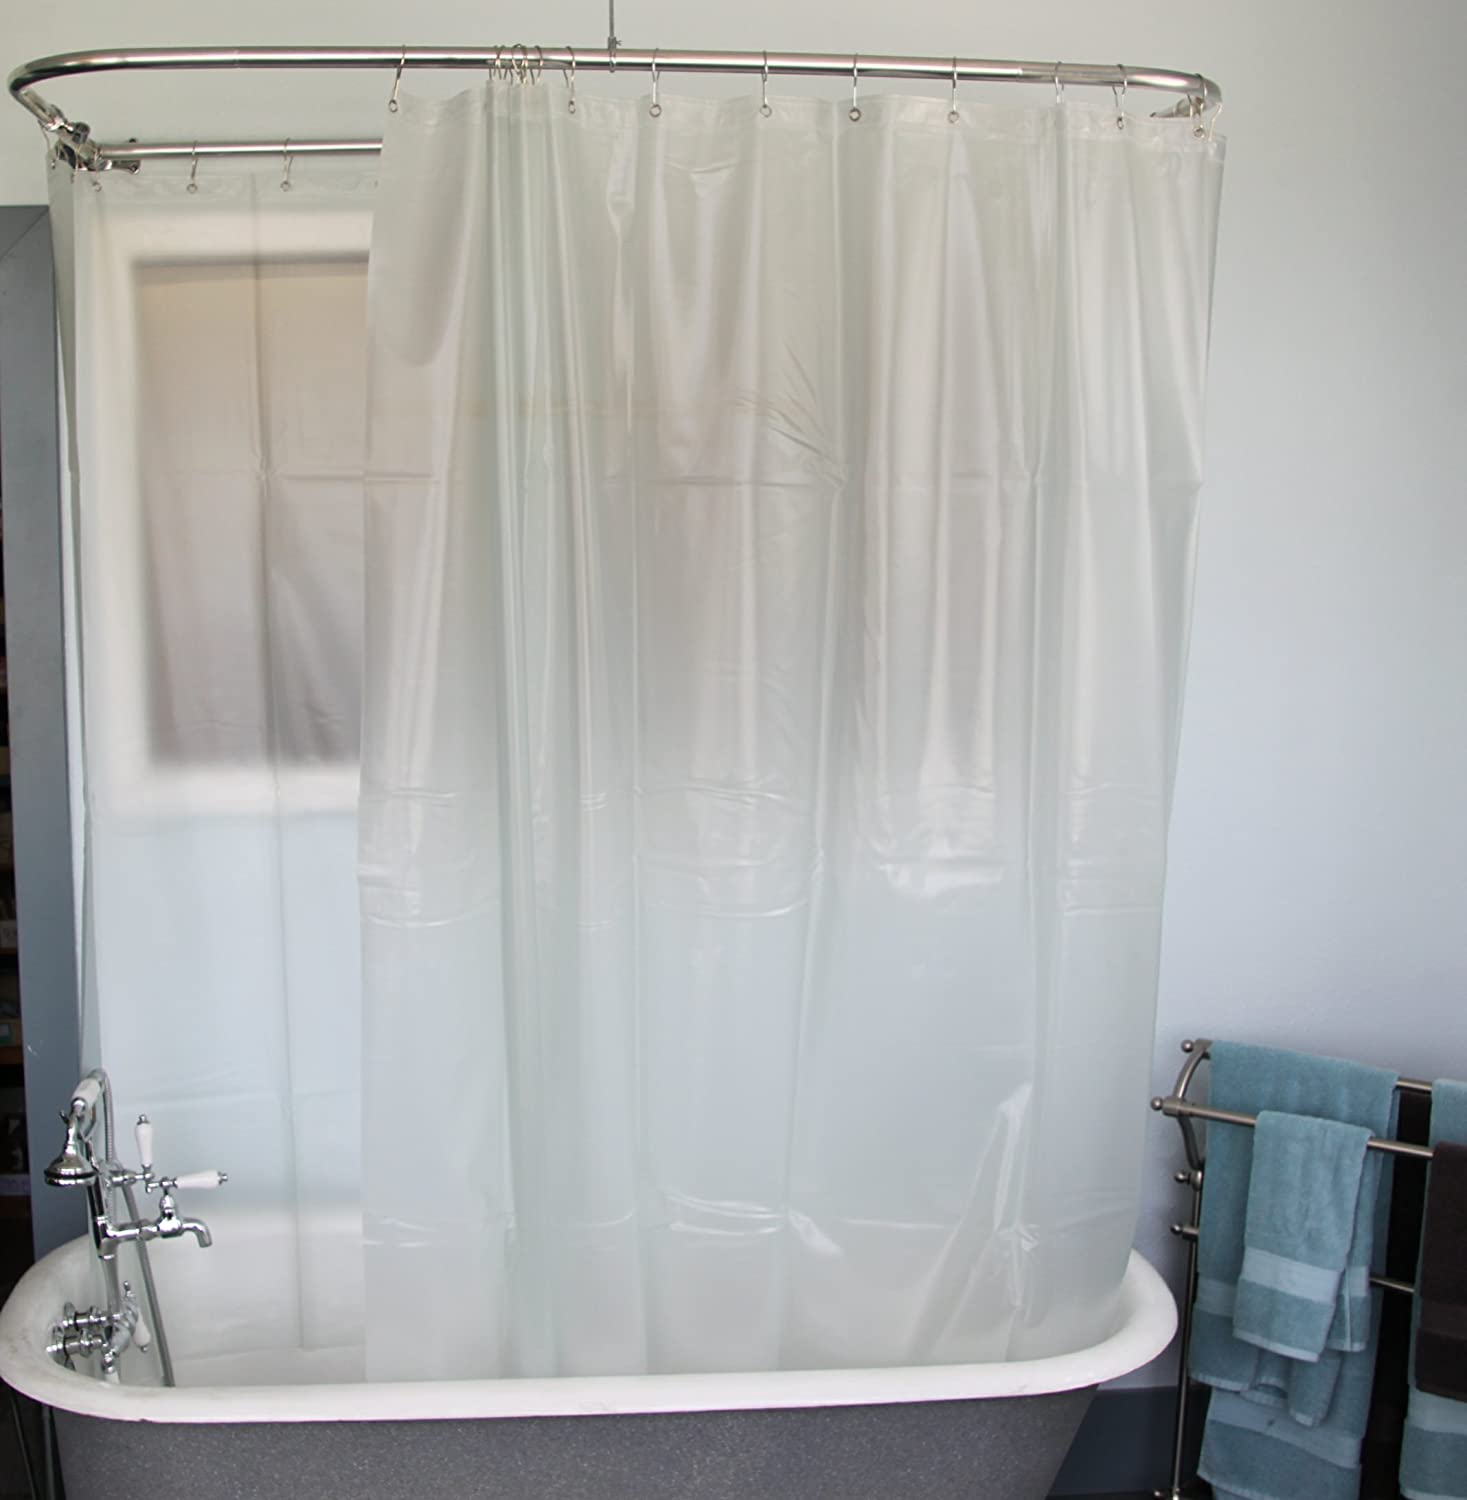 Transparent cloth shower curtain - Amazon Com Extra Wide Vinyl Shower Curtain For A Clawfoot Tub Opaque With Magnets 180 X 70 Home Kitchen